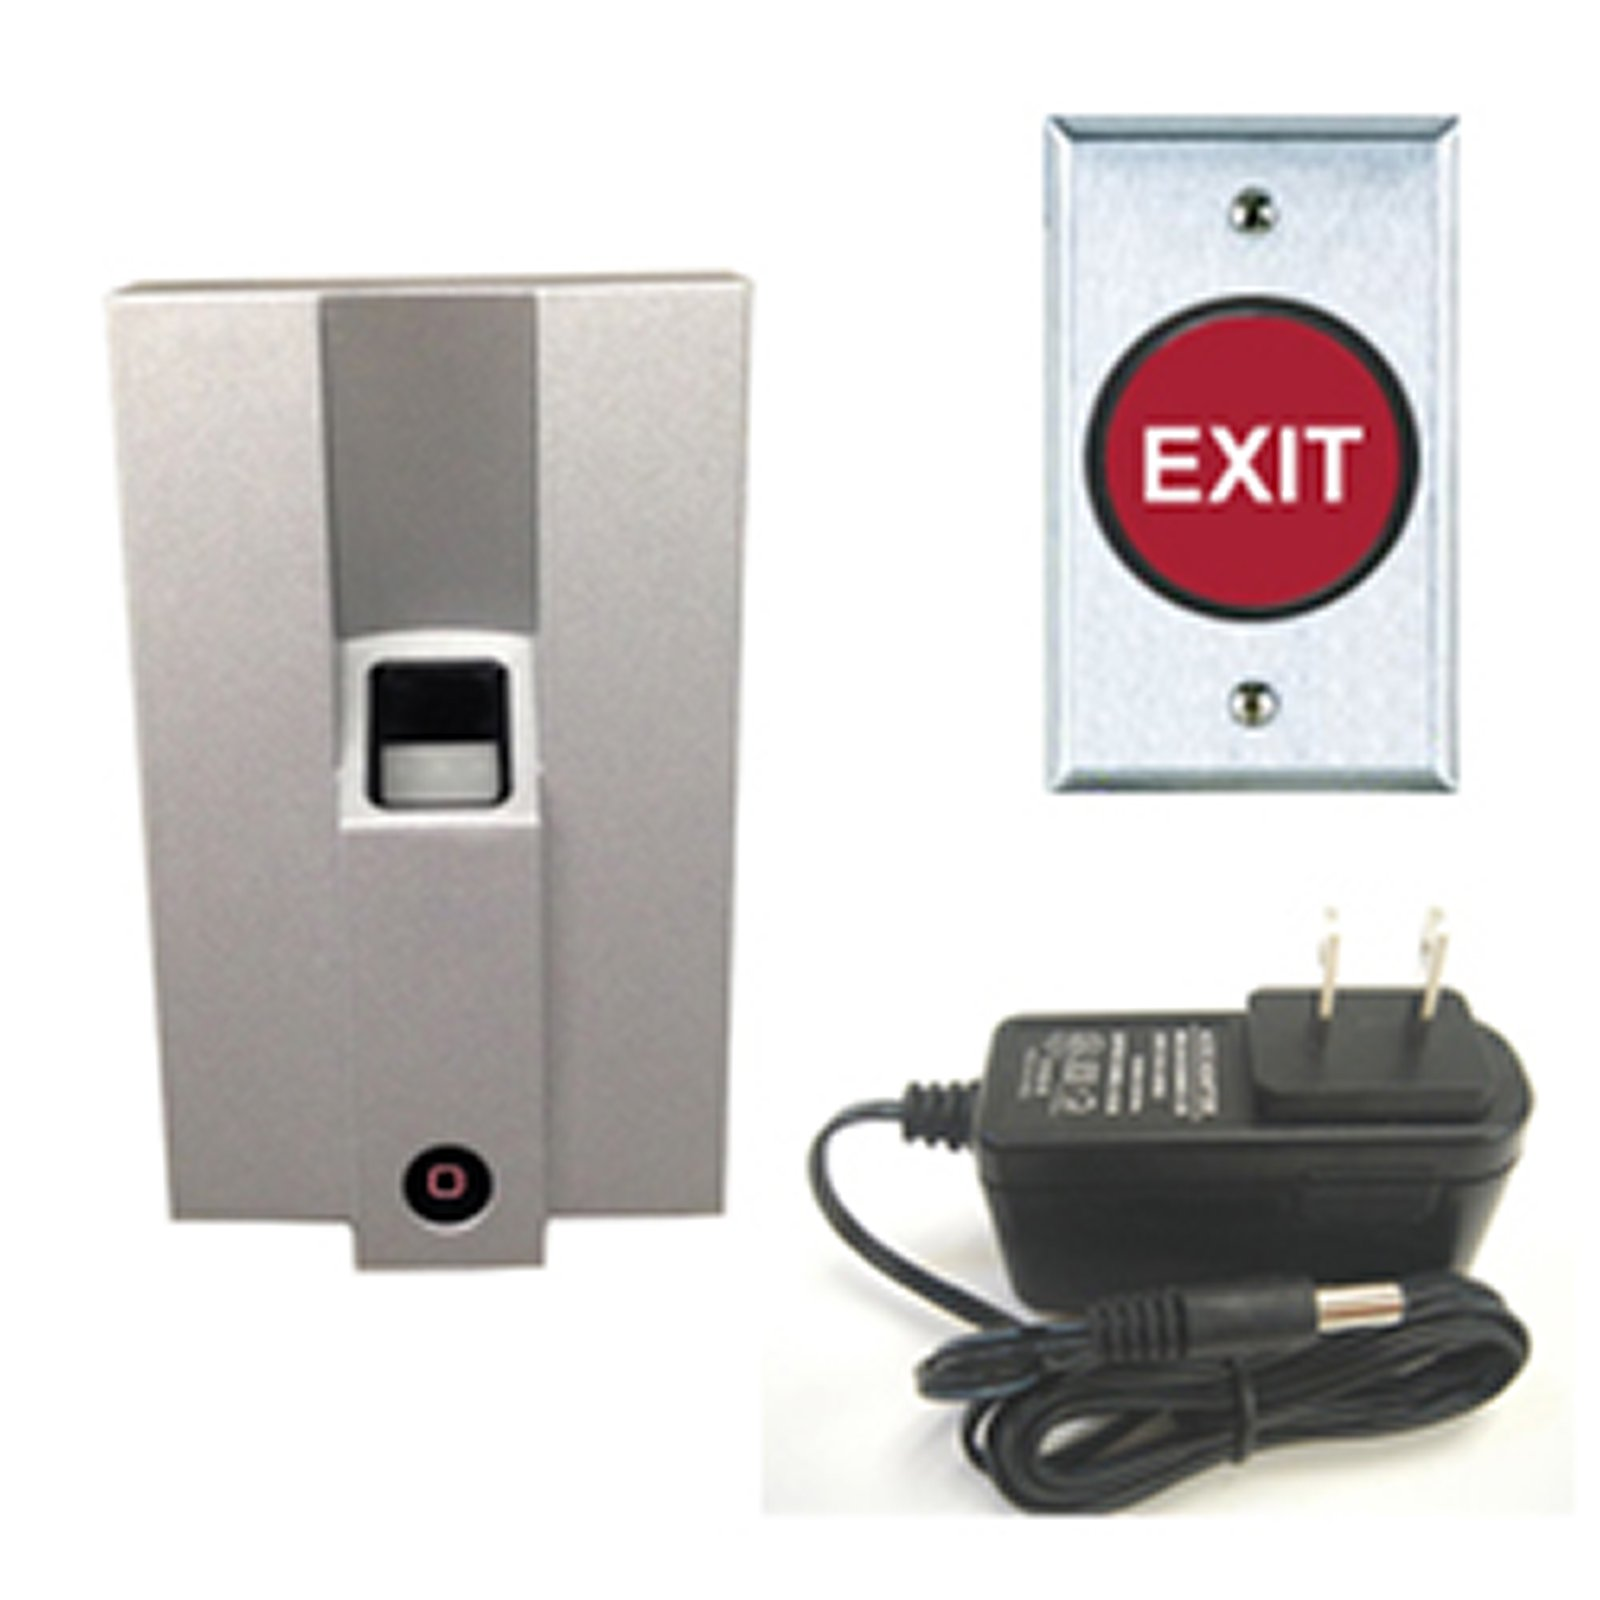 Metal Fingerprint Access Control/Reader FAS-SB-01SF 125 KHz kit with Push Button H-PB4RE and Power Supply Transformer by FAS